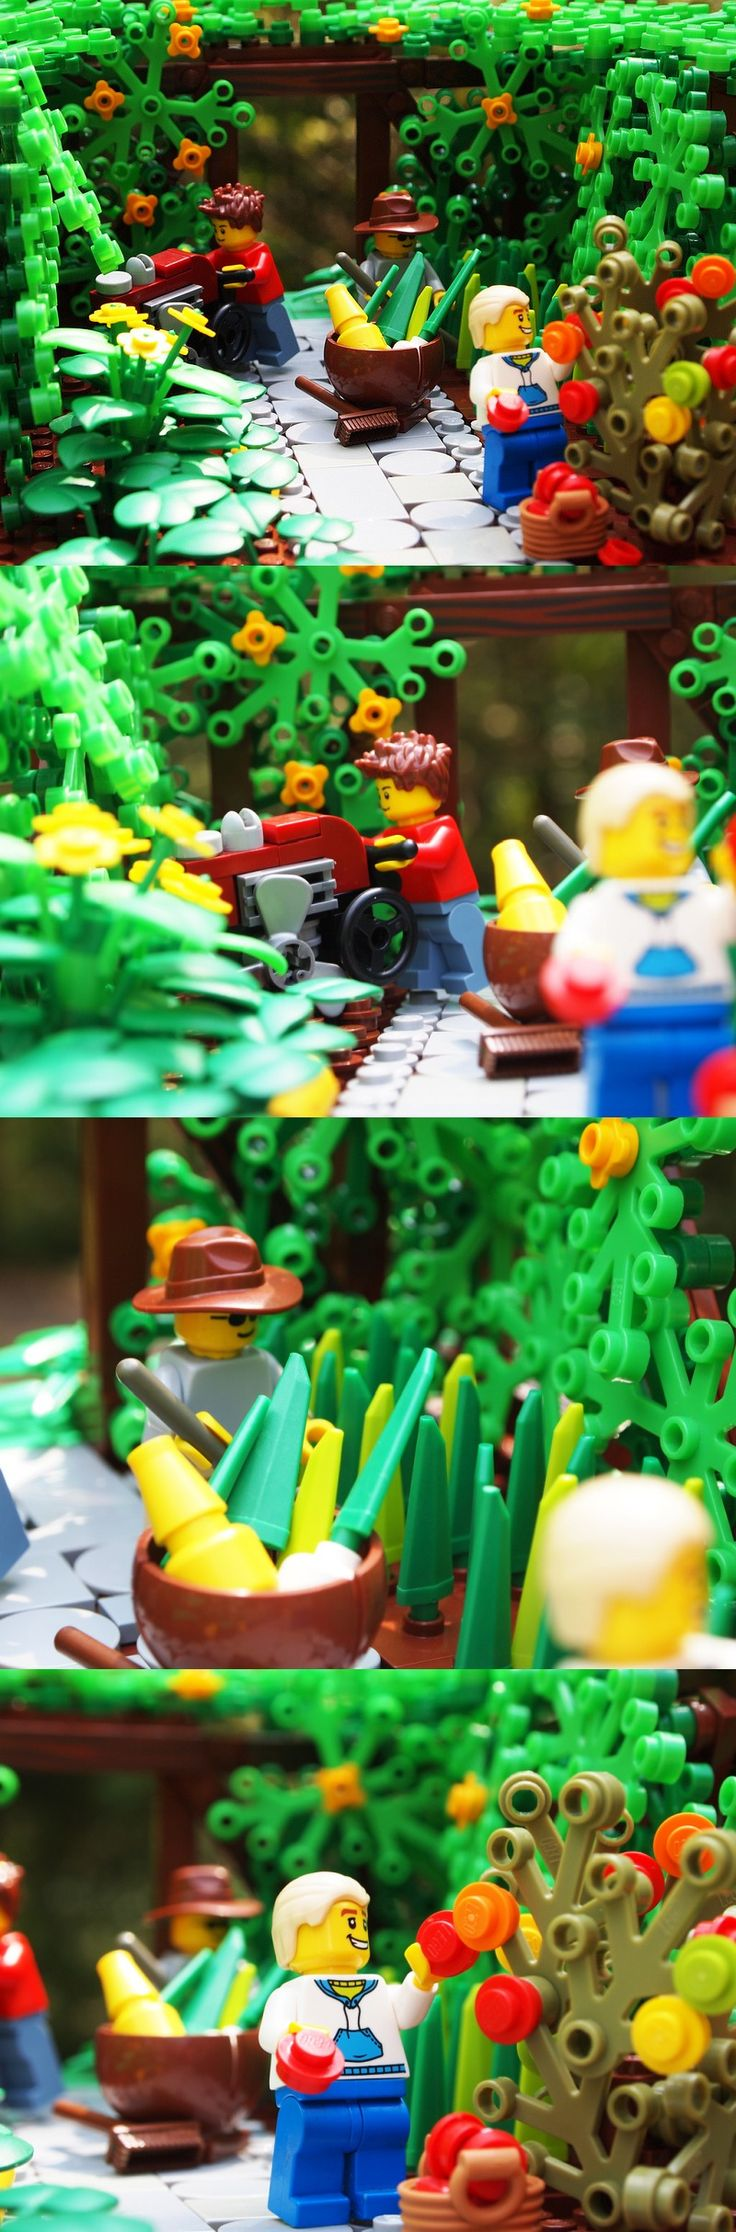 Gardening! LEGO. Mark of Farworth (I think) Thanks for my favorite real life setting done with my favorite indoor activity!